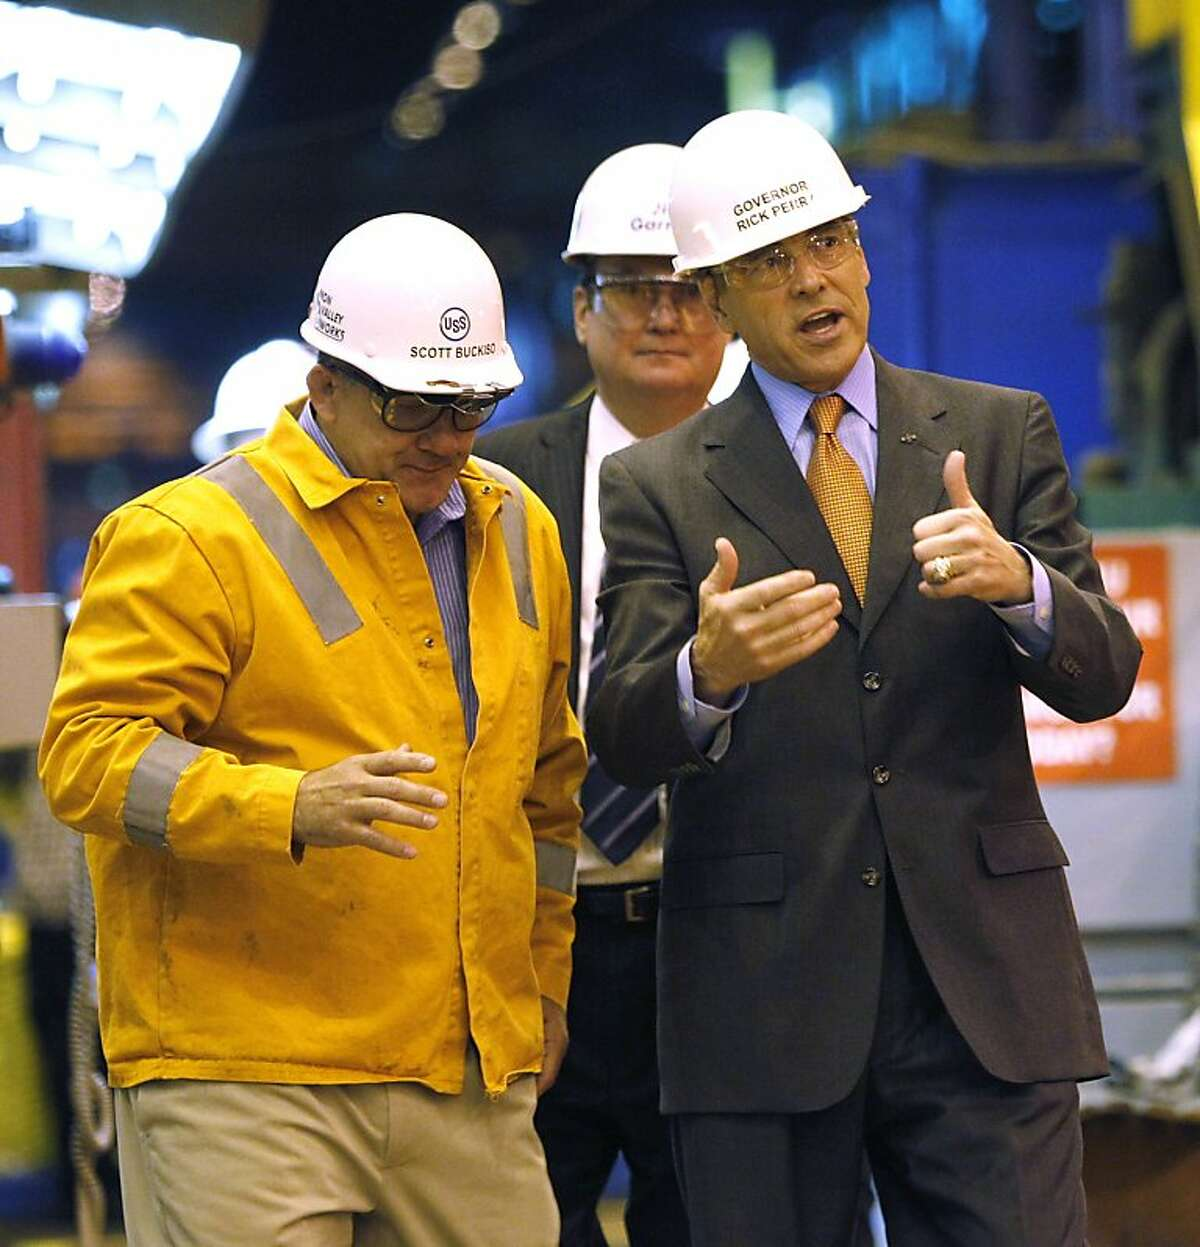 Republican presidential candidate, Texas Gov. Rick Perry, right, talks with Scott Buckiso as he tours the United States Steel Irvin Works in West Mifflin, Pa., Frida, Oct. 14, 2011, before he spoke about energy and environmental regulations. (AP Photo/Keith Srakocic)